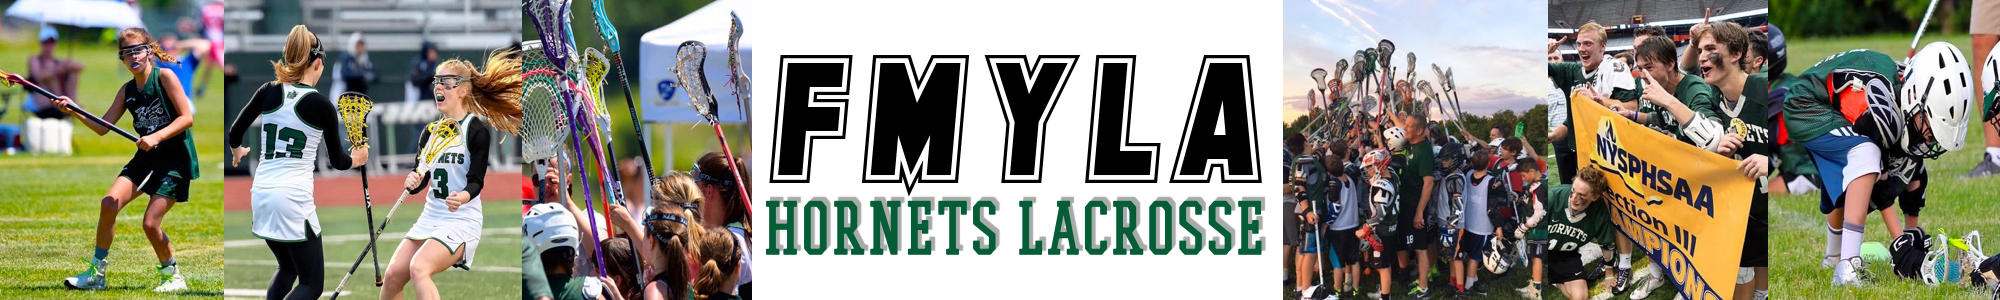 Fayetteville Manlius Youth Lacrosse Association, Lacrosse, Goal, Field